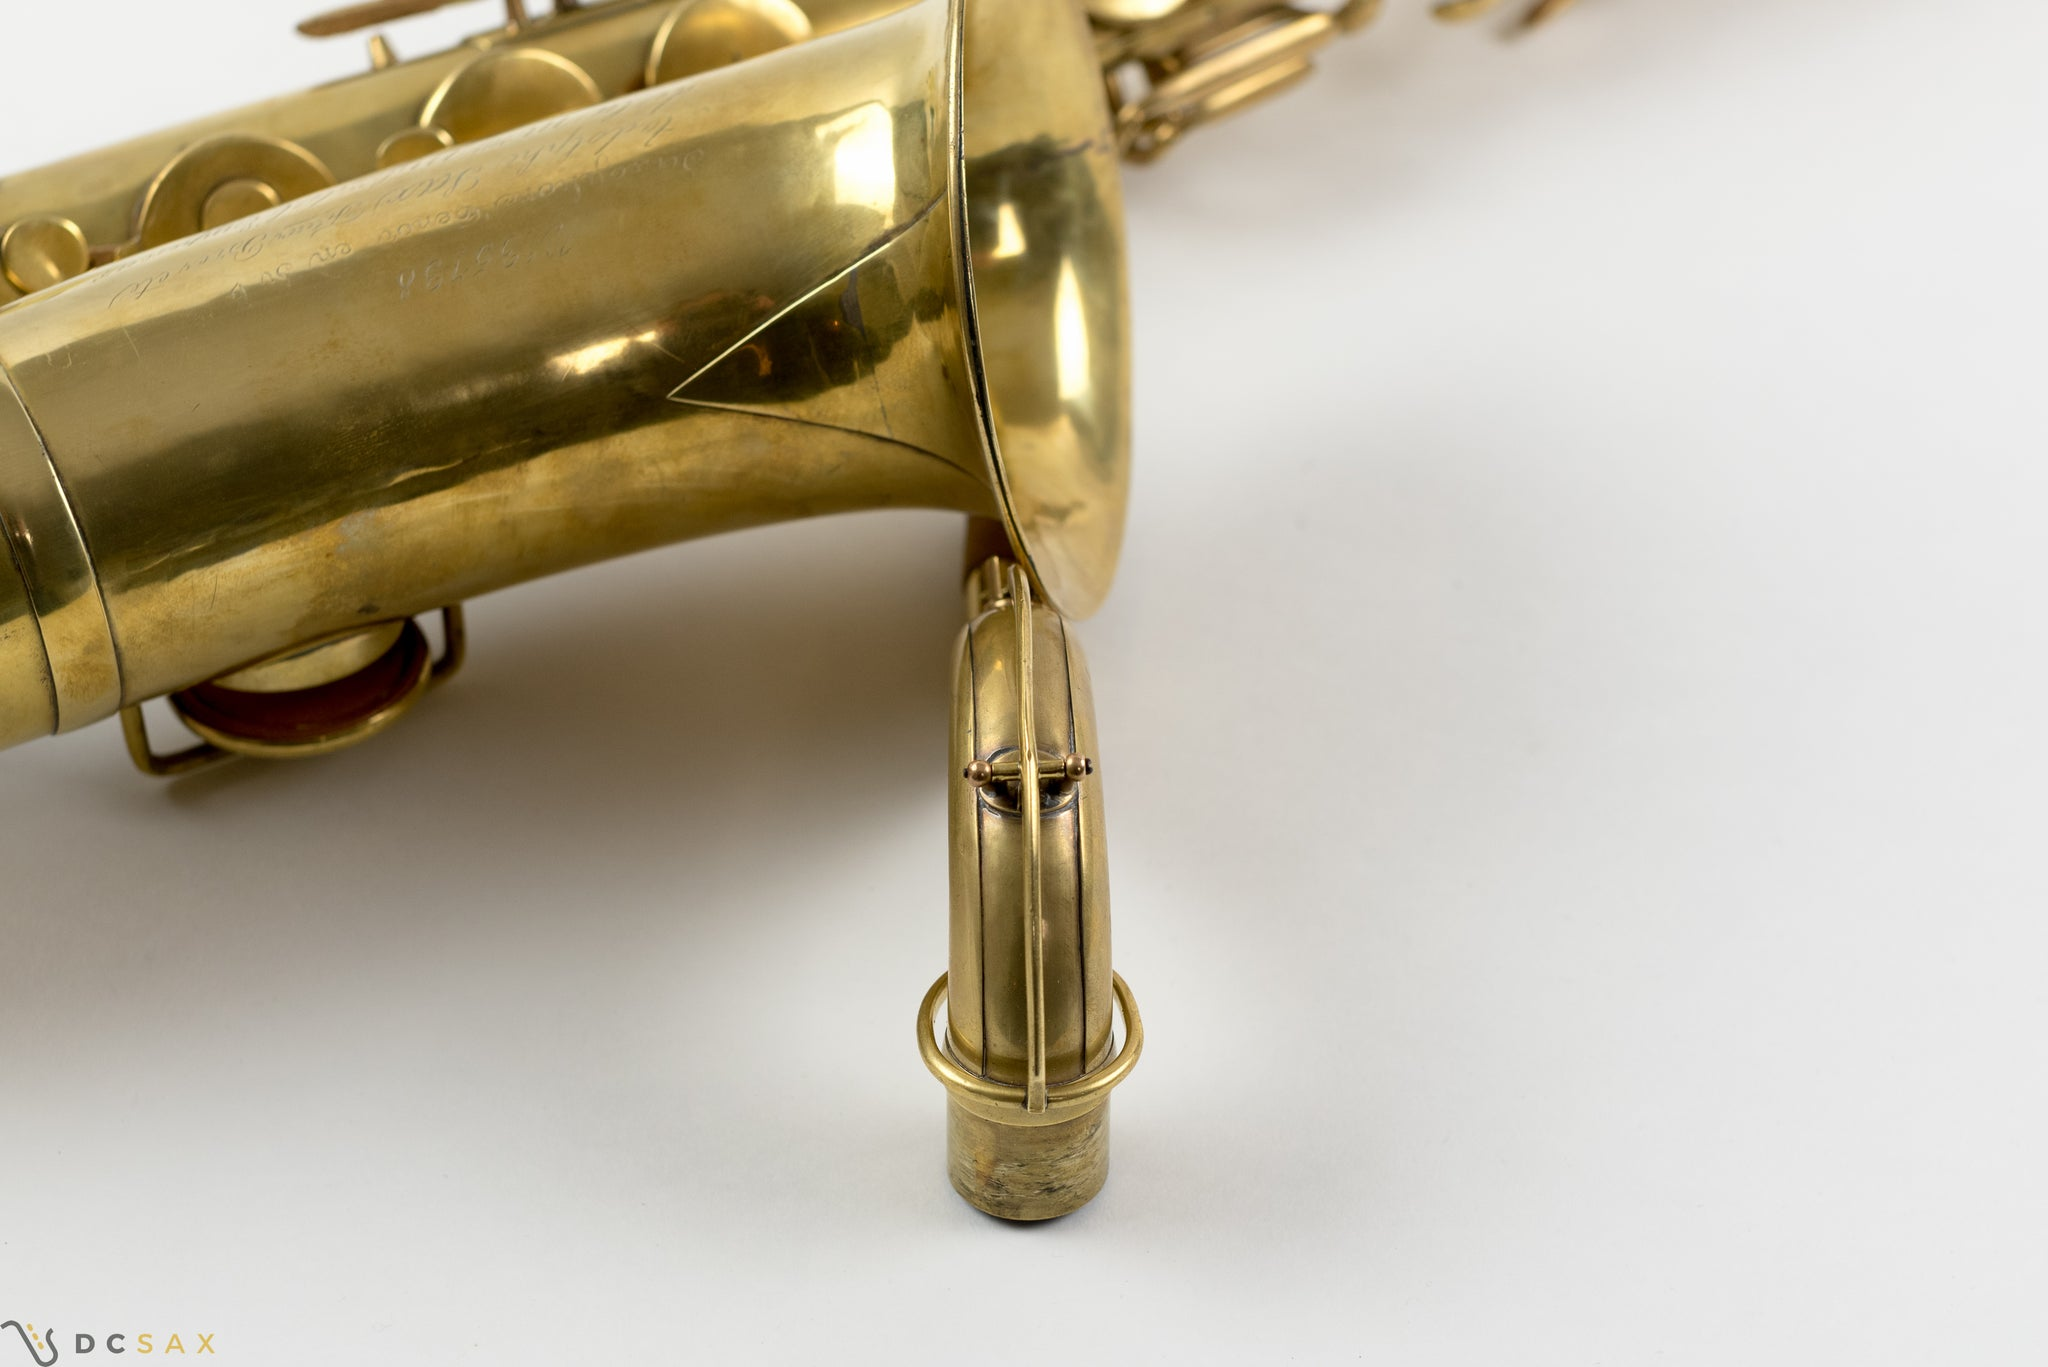 1870 Adolphe Sax Tenor Saxophone, Video Demo